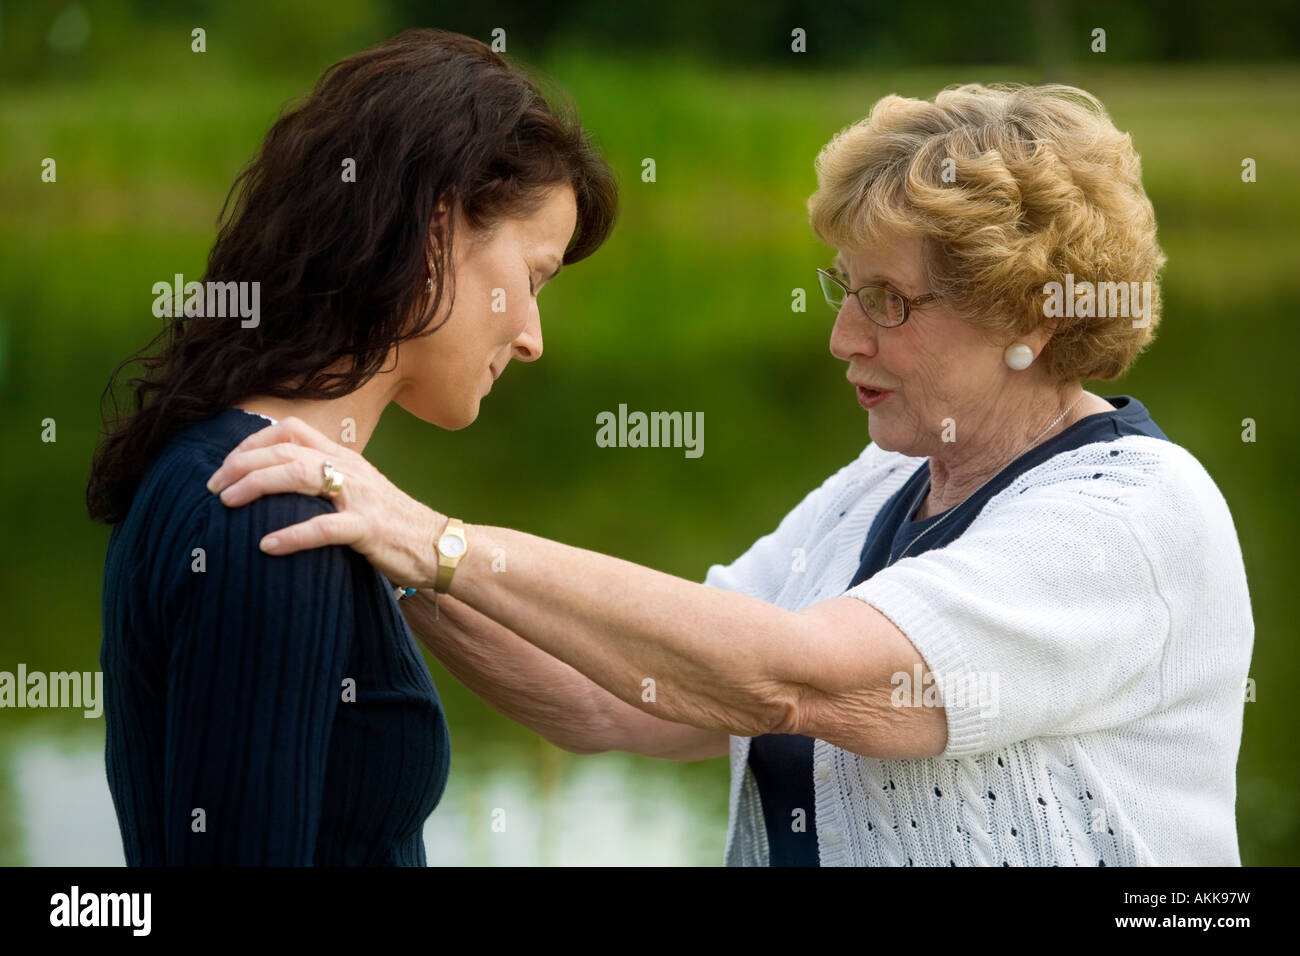 Senior woman consoling her daughter - Stock Image